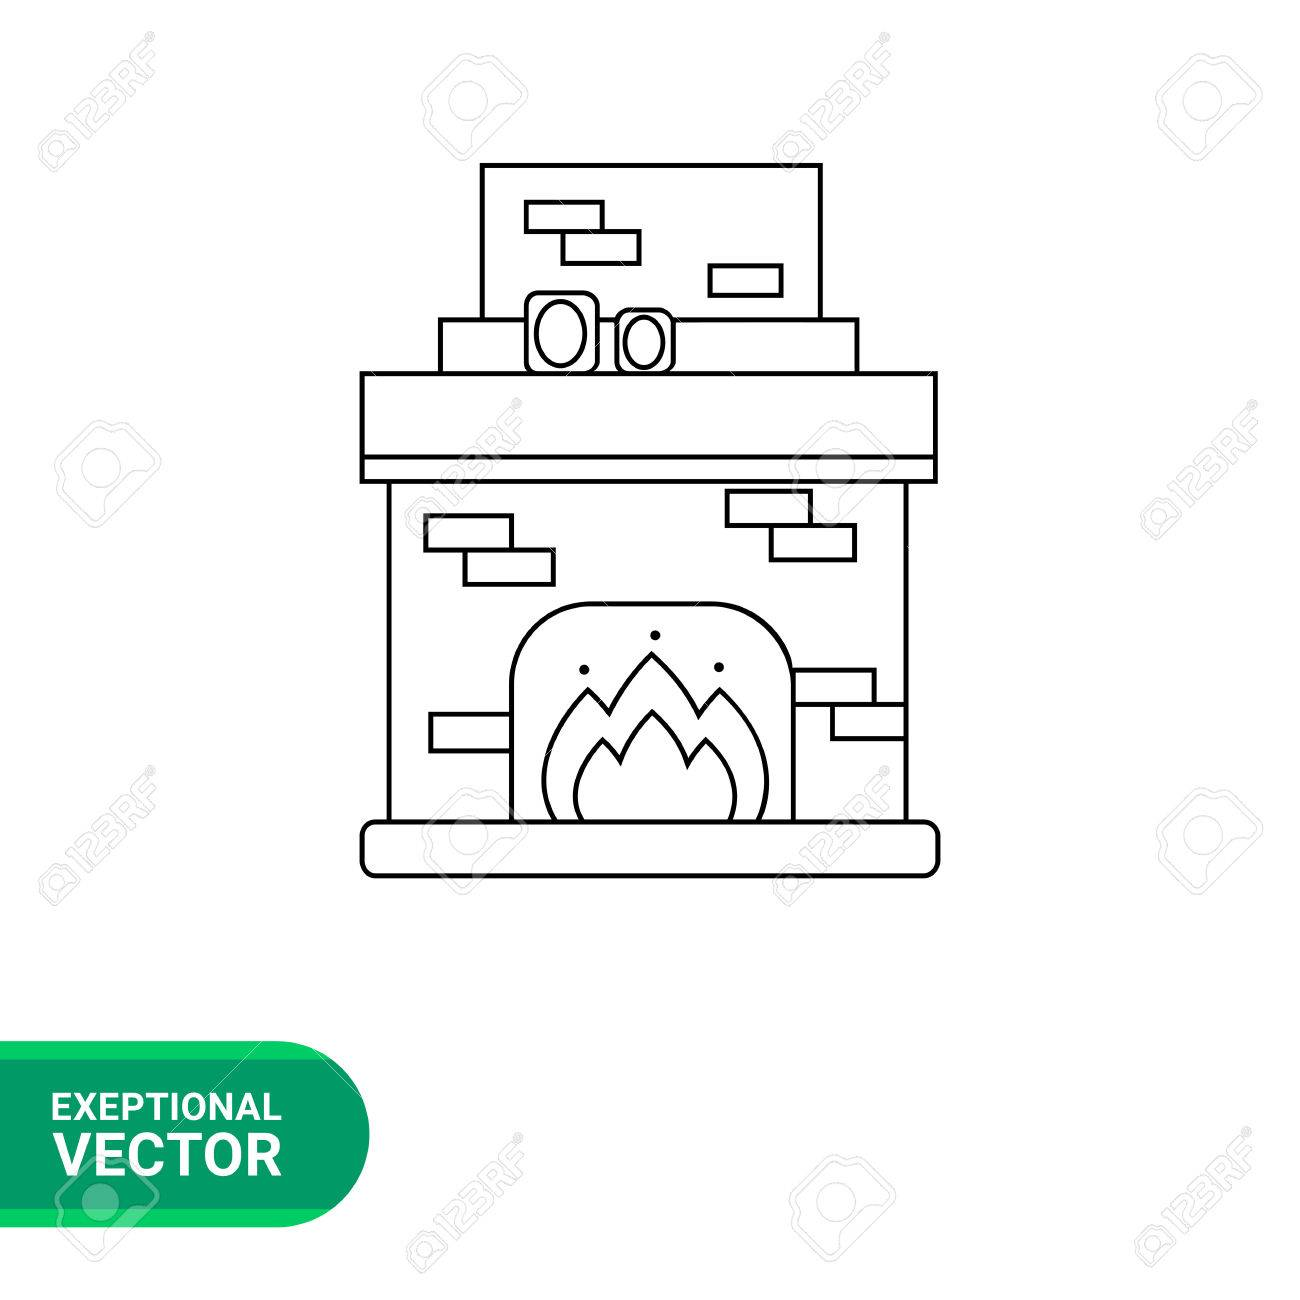 hight resolution of monochrome vector icon of brick fireplace with chimney burning fire and photo frames on it